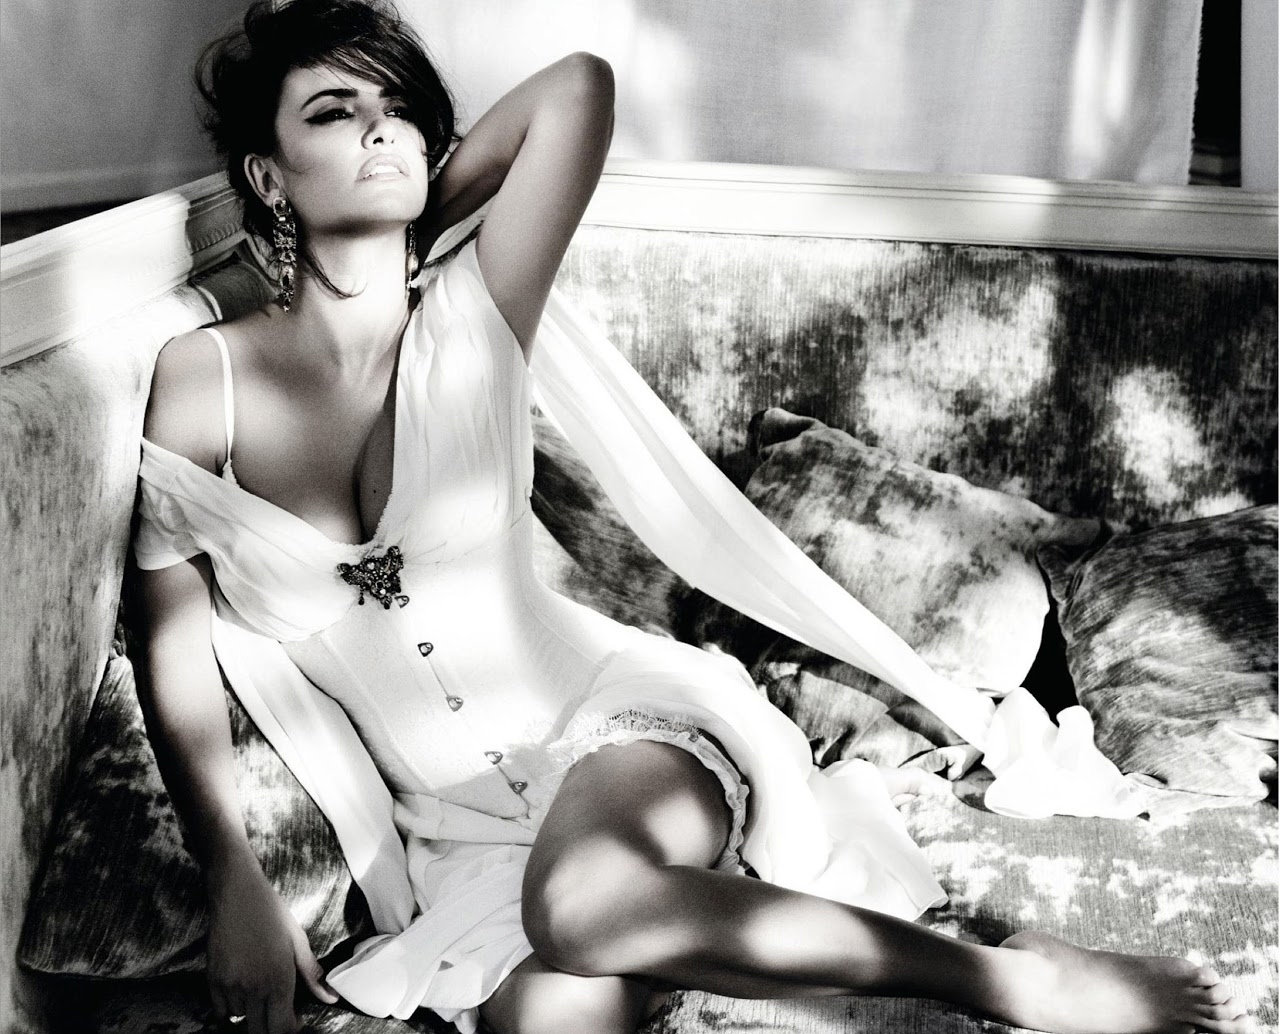 penelope cruz by tom munro